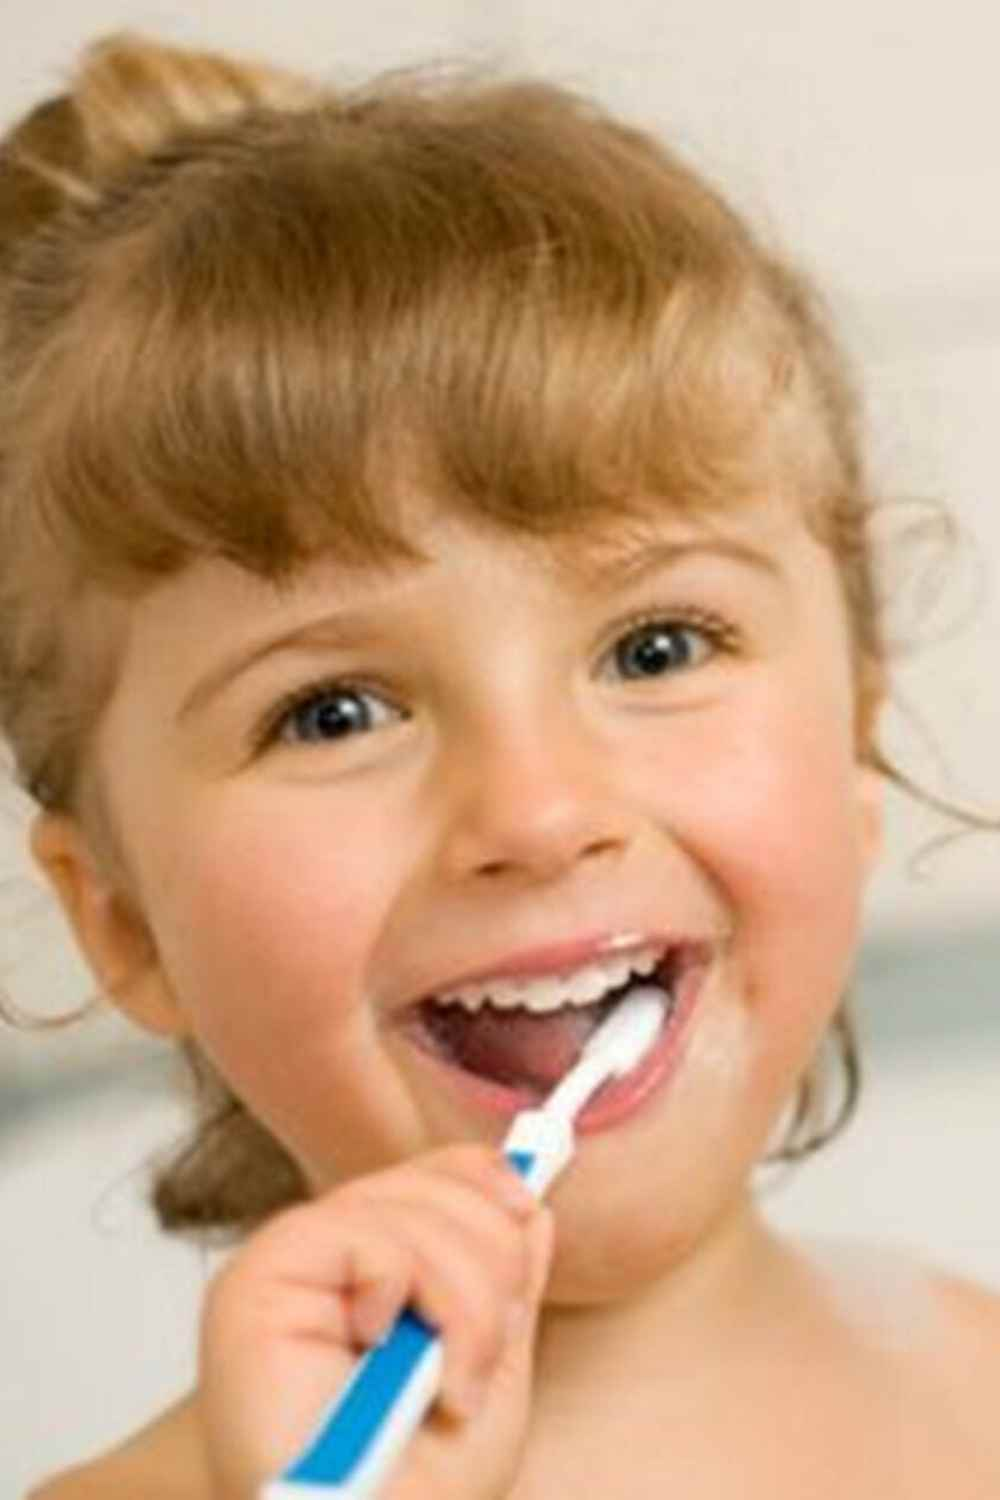 child with dental phobia